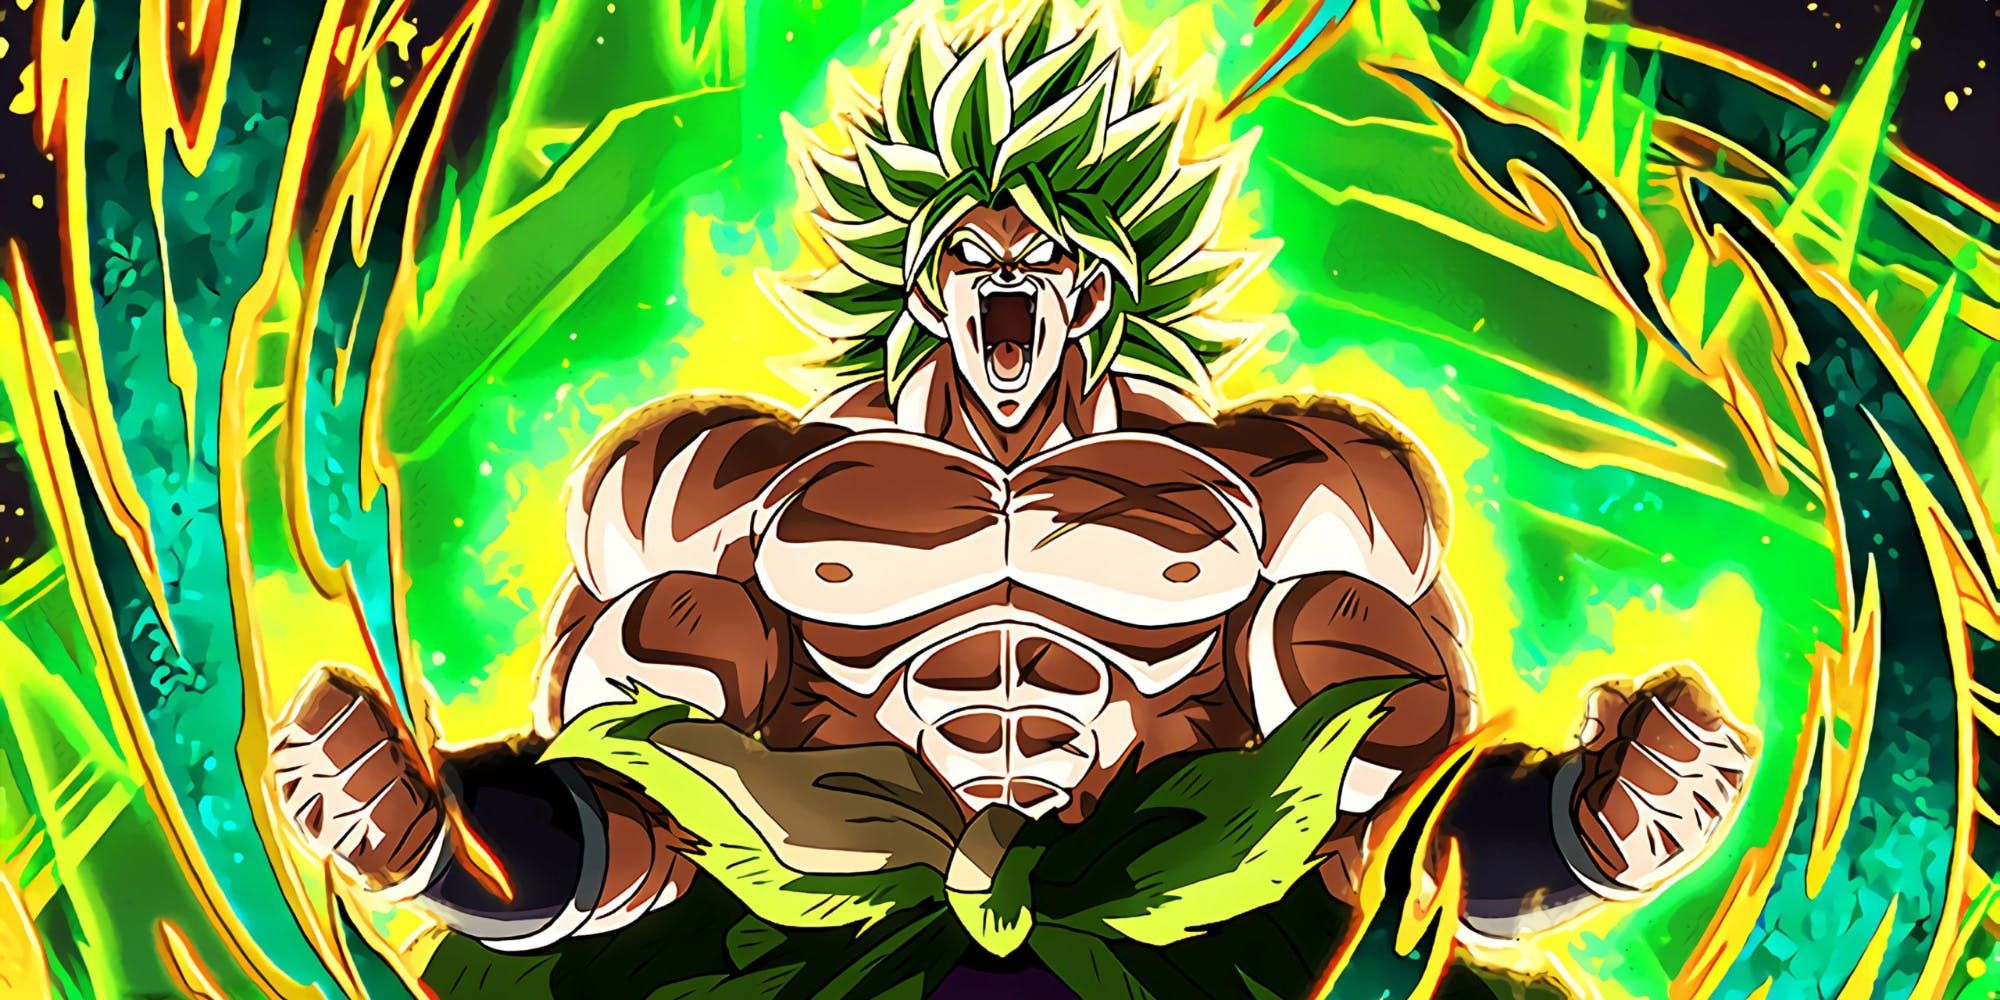 Dragon Ball Super: Broly Almost Featured Another Major Fight